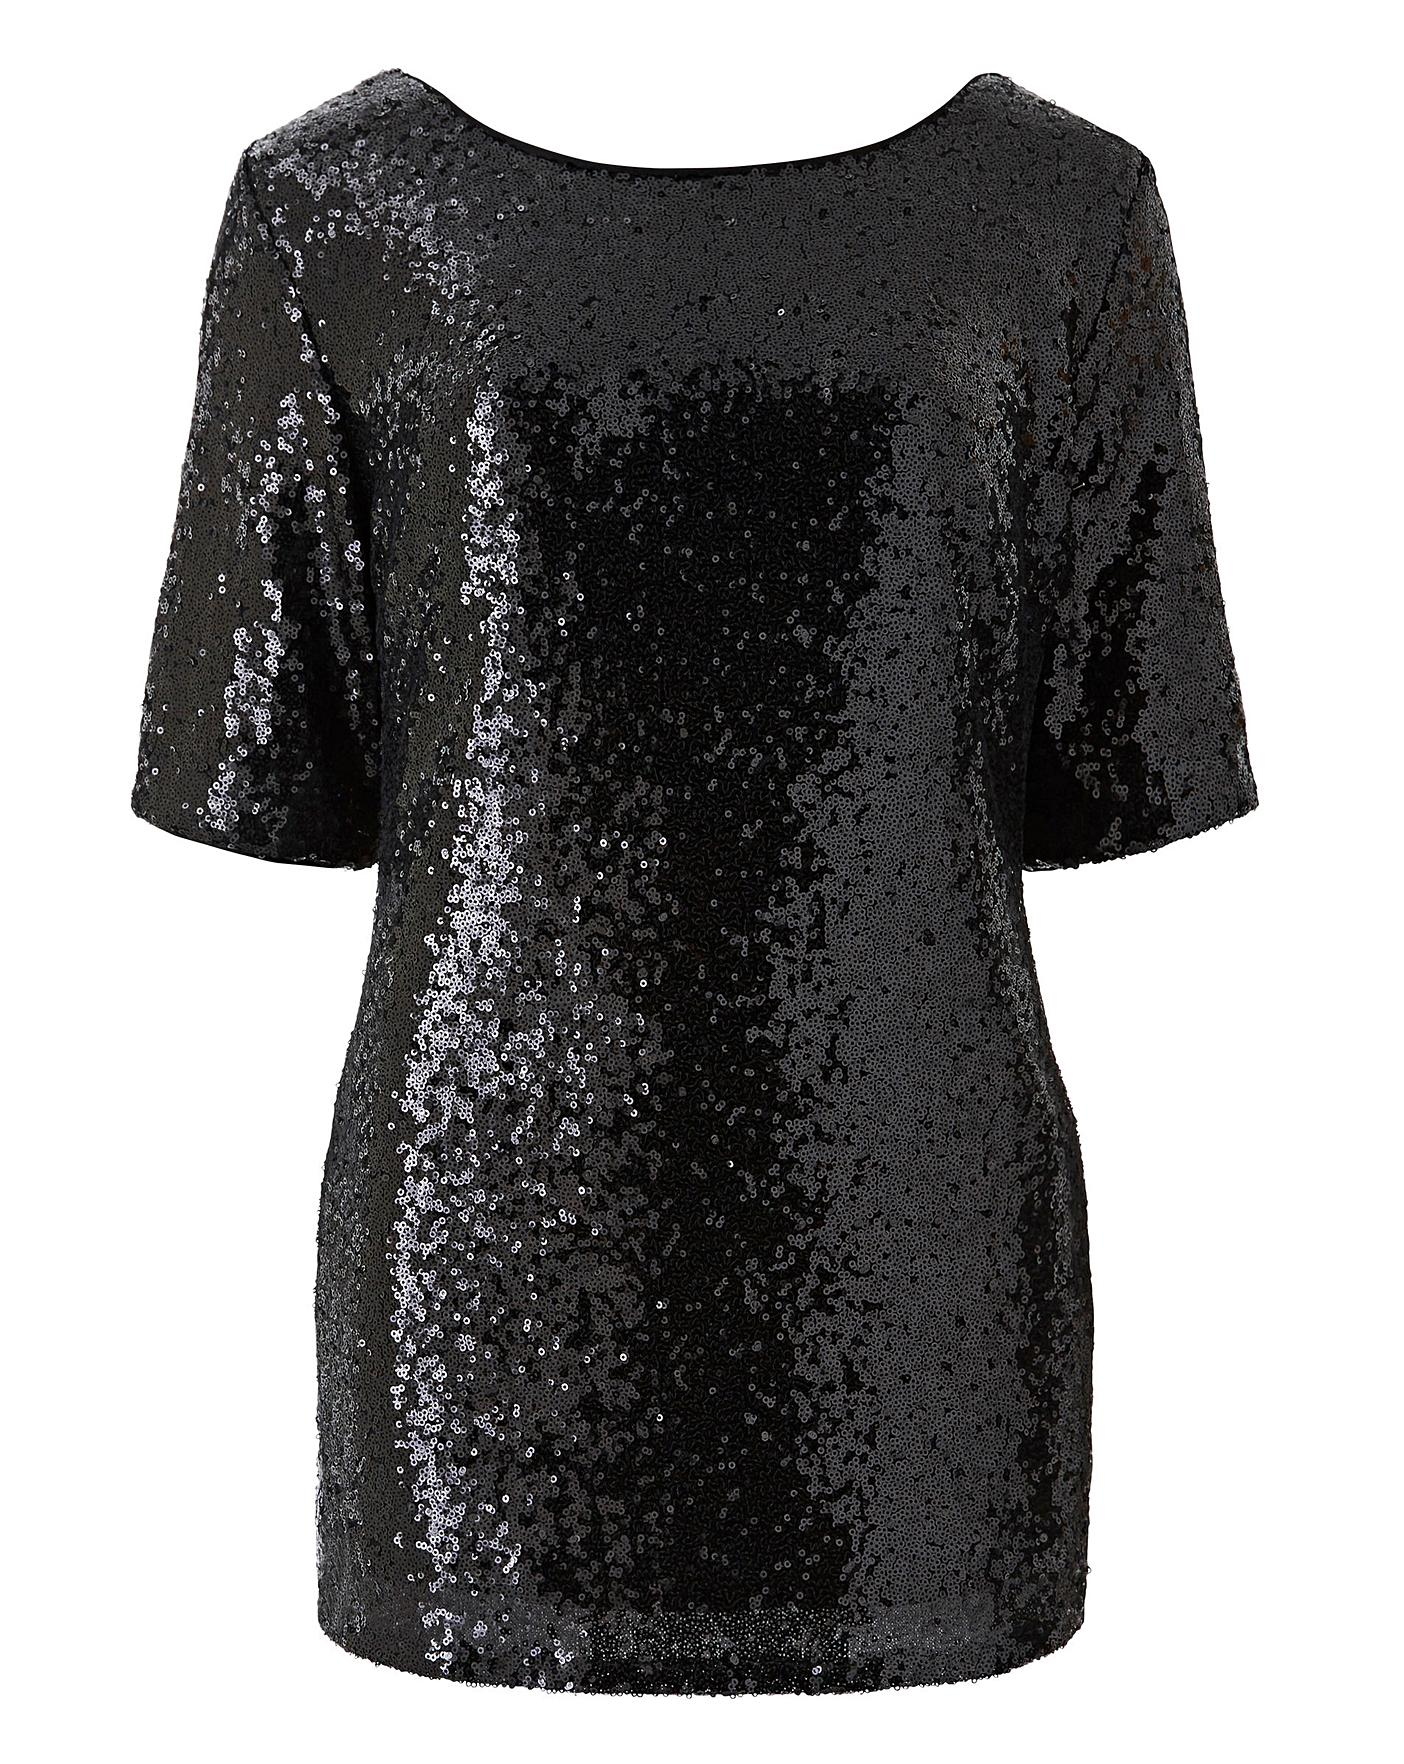 4355e648171 Black All Over Sequin Top | Simply Be